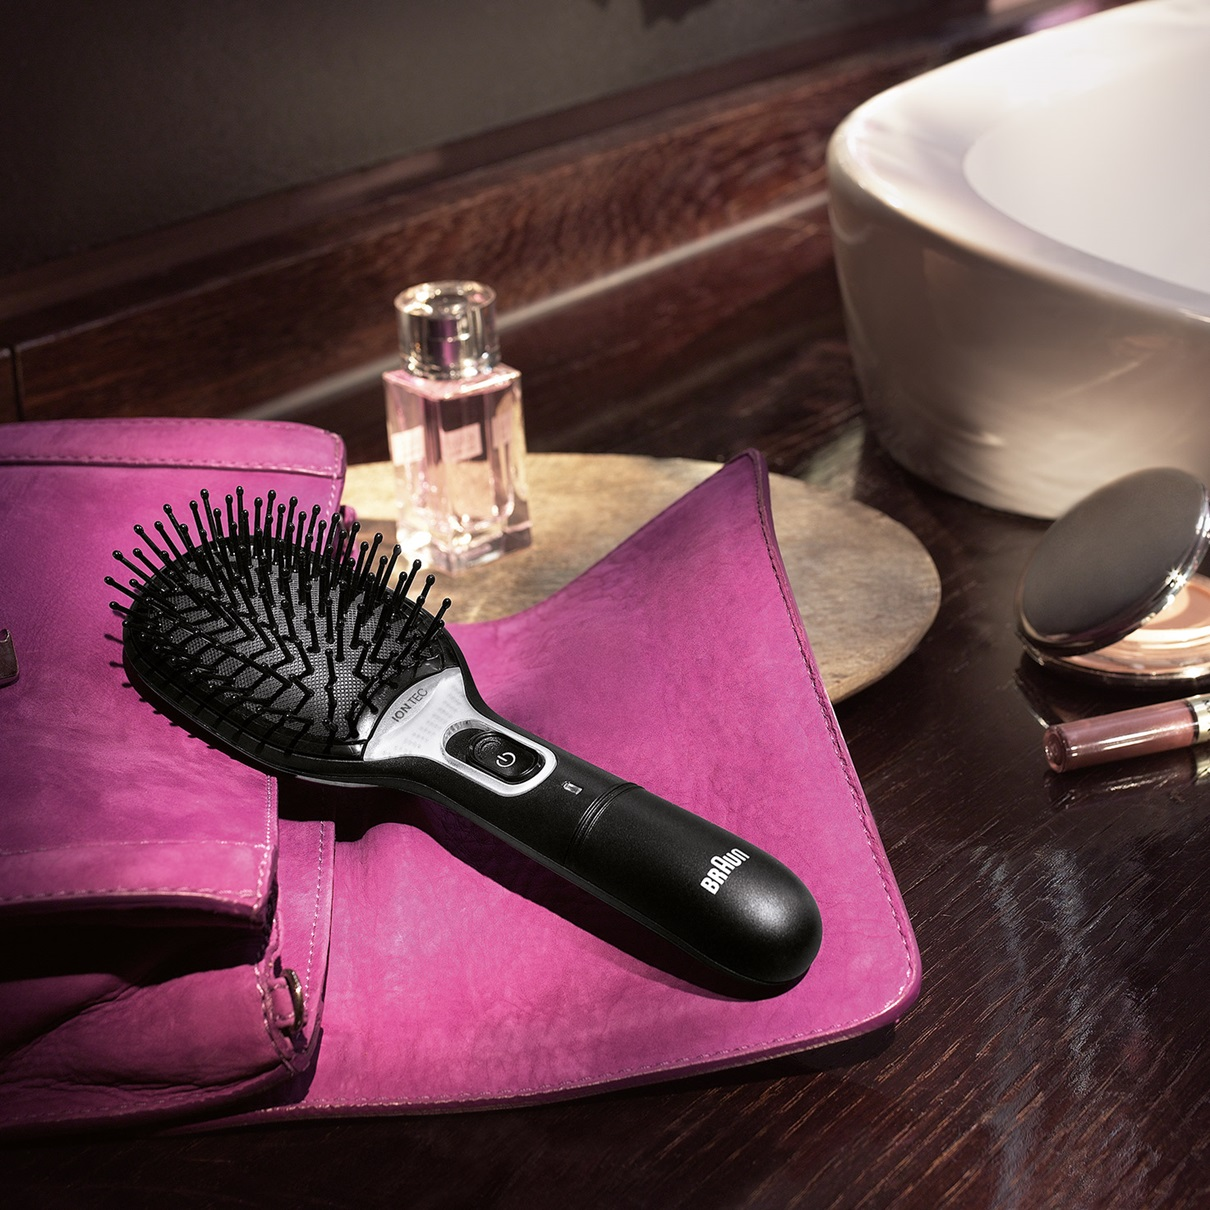 Braun Satin Hair 7 BR710 brush with IONTEC